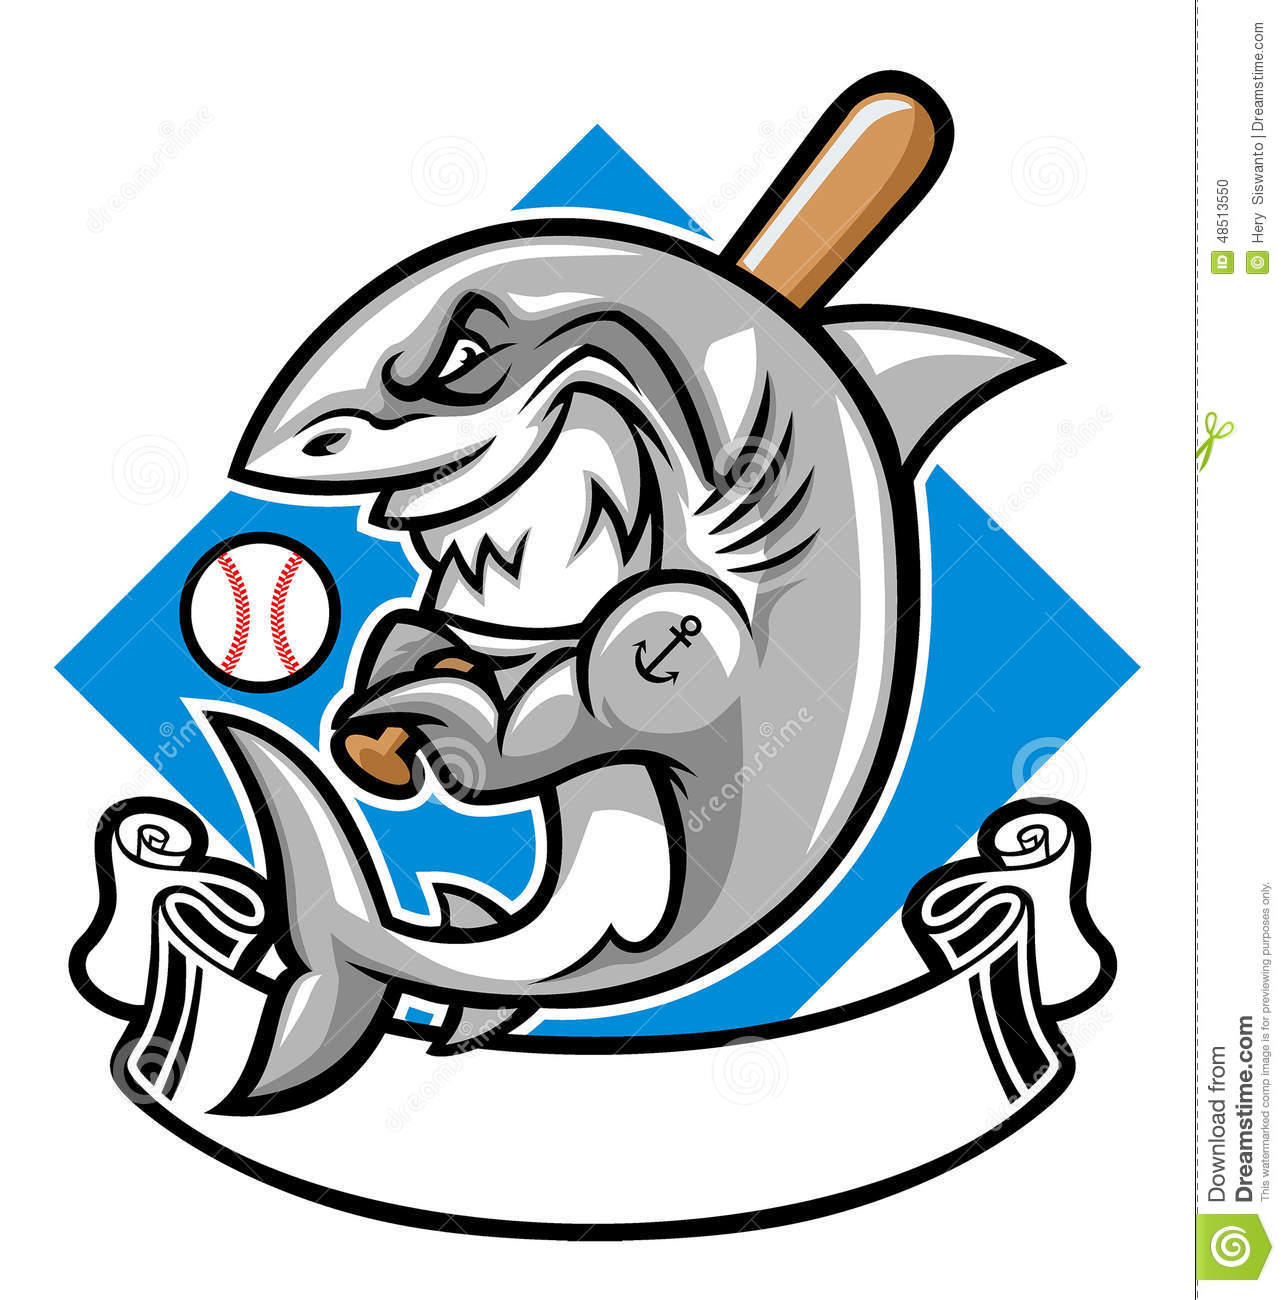 Shark baseball mascot stock vector. Image of baseball ...